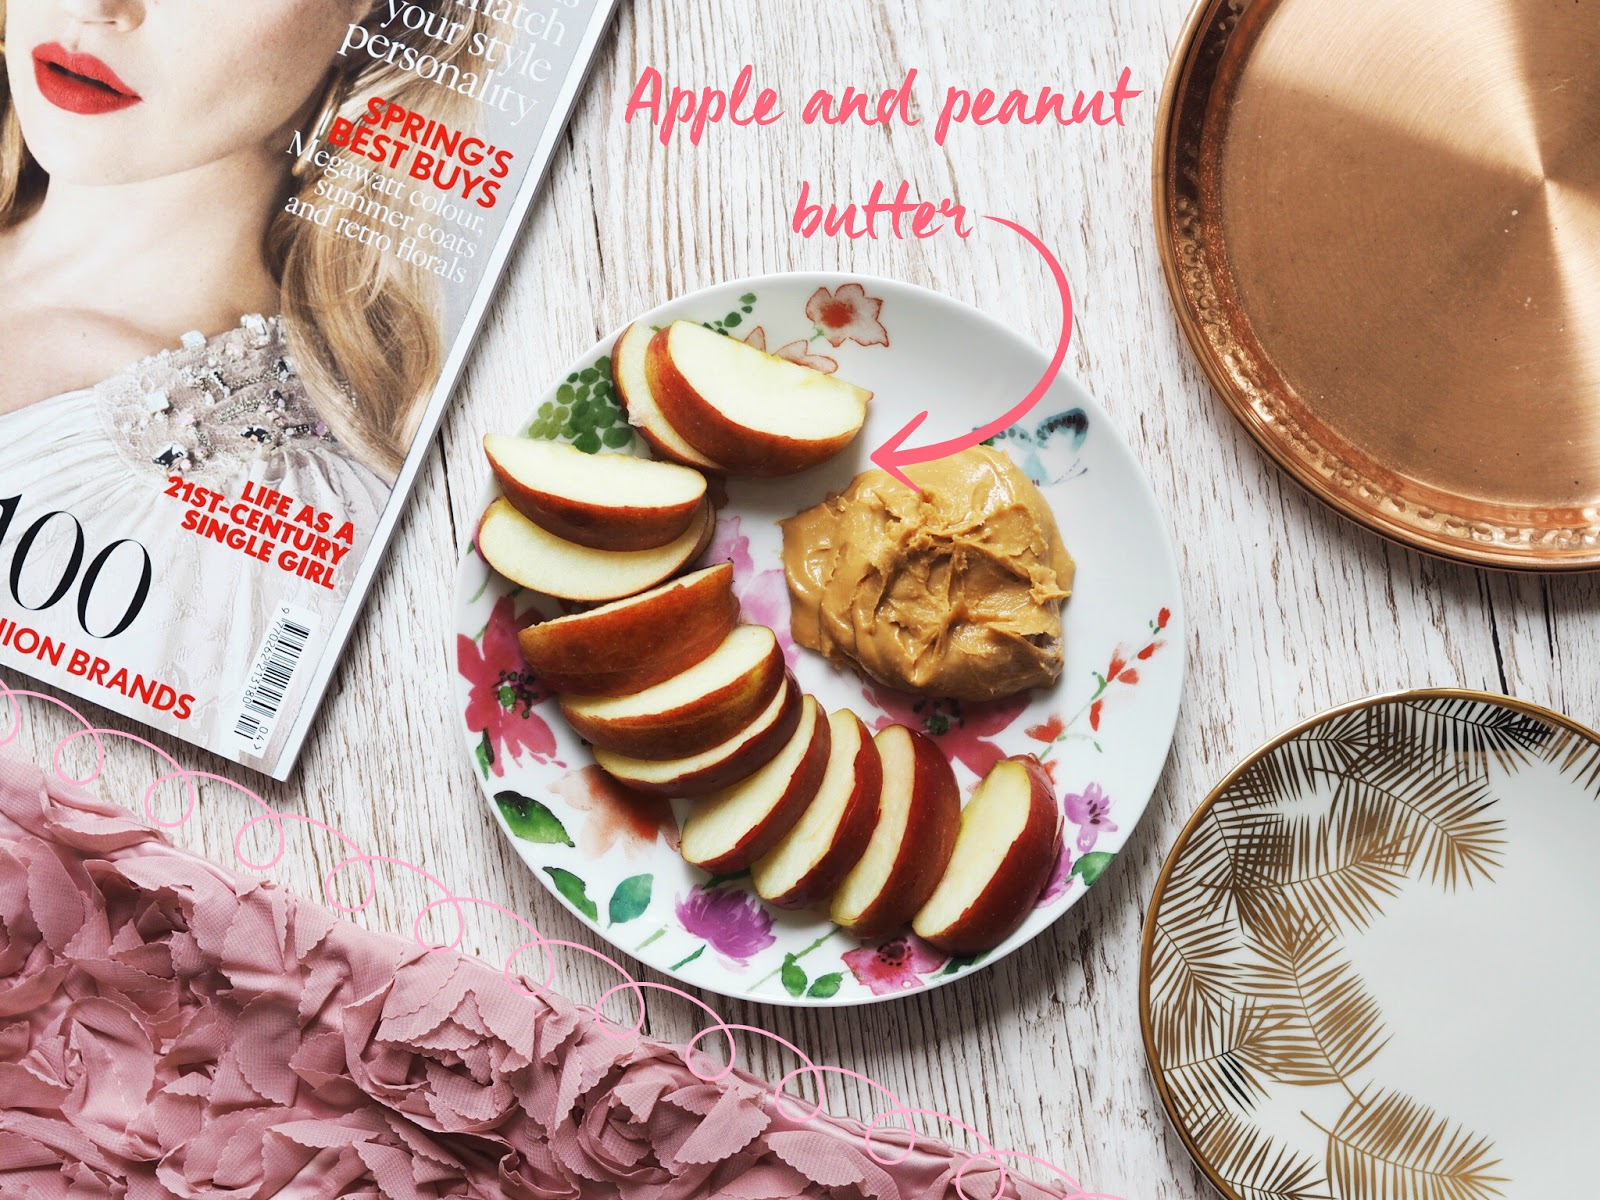 apple peanut butter vegan snack ideas quick and easy healthy food bloggers flatly